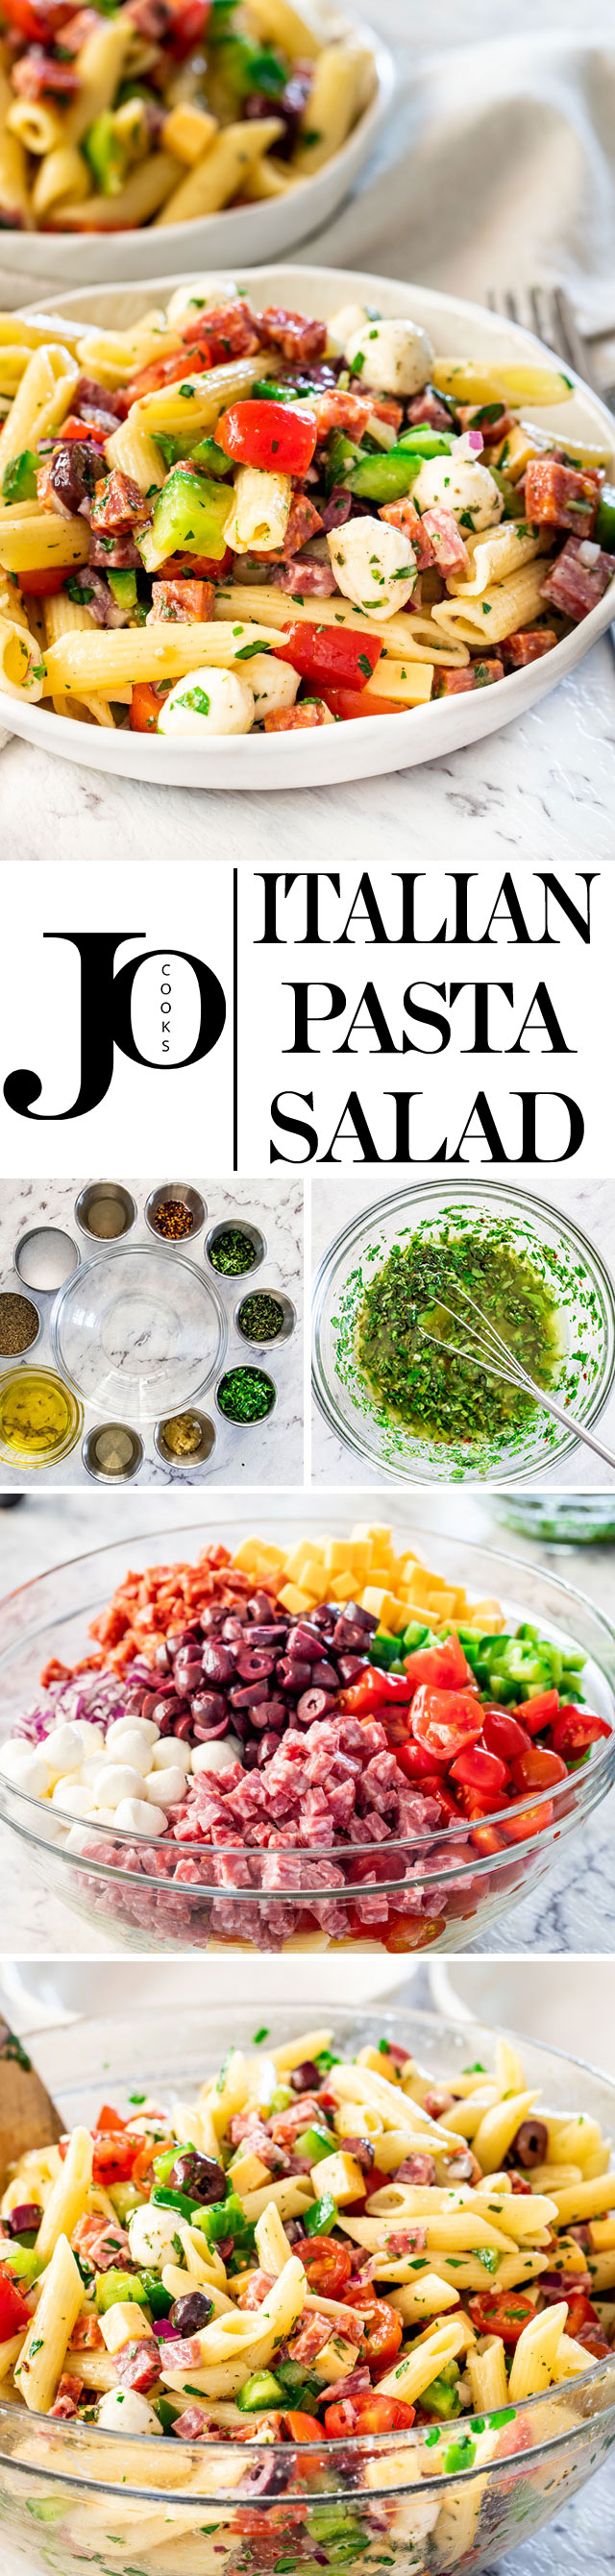 This Italian Pasta Salad is what everyone needs in their go-to recipe arsenal for quick and easy recipes ideal for a potluck, picnic or any other summer get-togethers. It's healthy, it's fast, super easy to make, delicious and bursting with flavor. #italianpastasalad